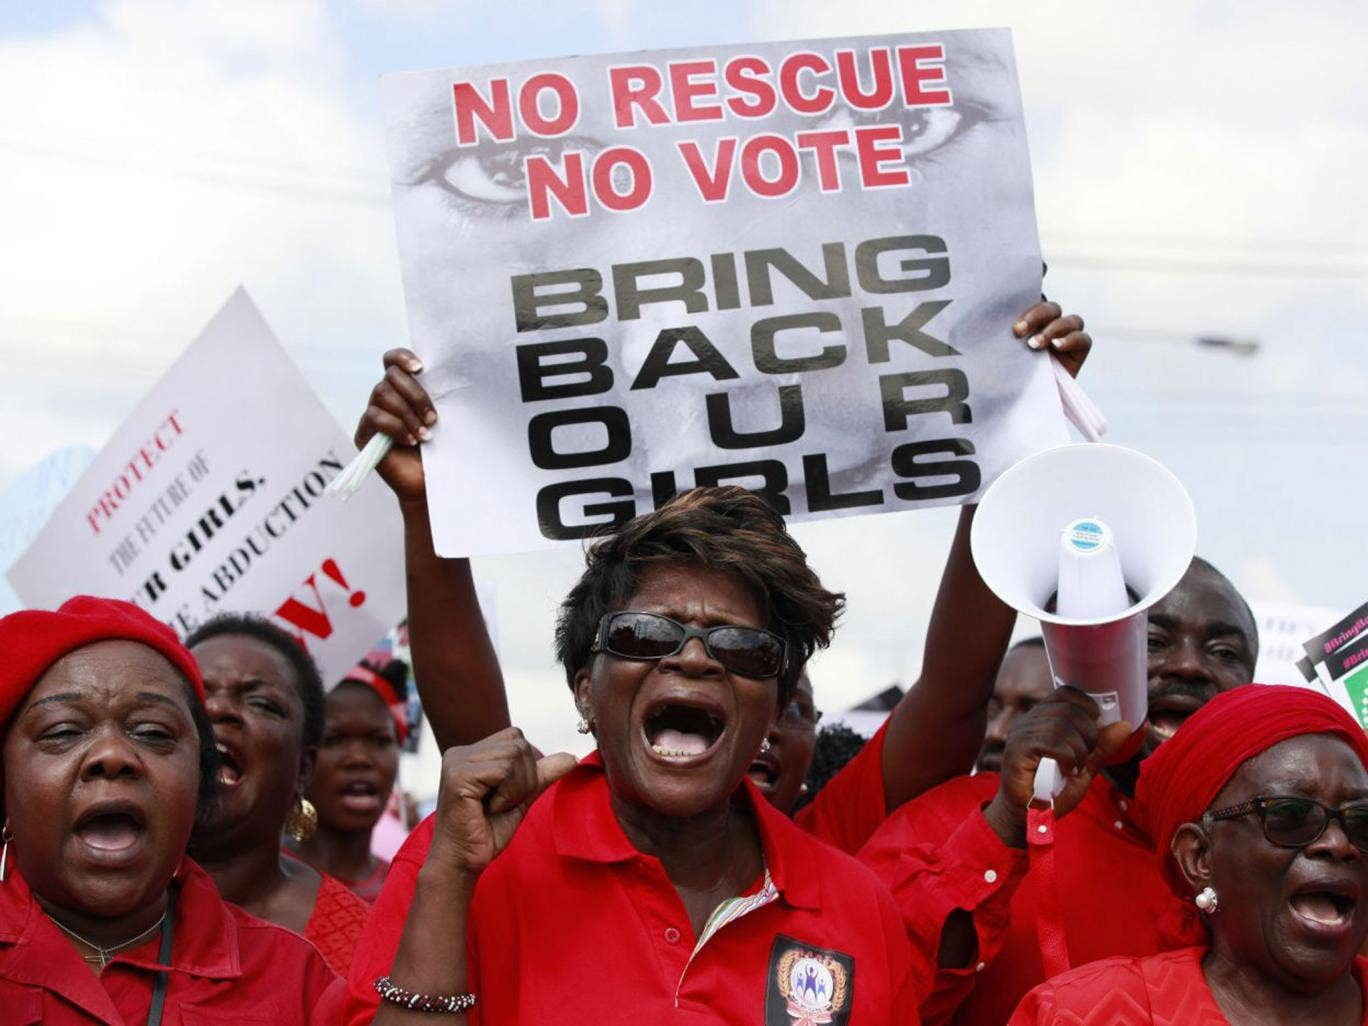 Protesters call on the government to rescue the kidnapped schoolgirls at a demonstration in Lagos. There have been similar protests throughout the country